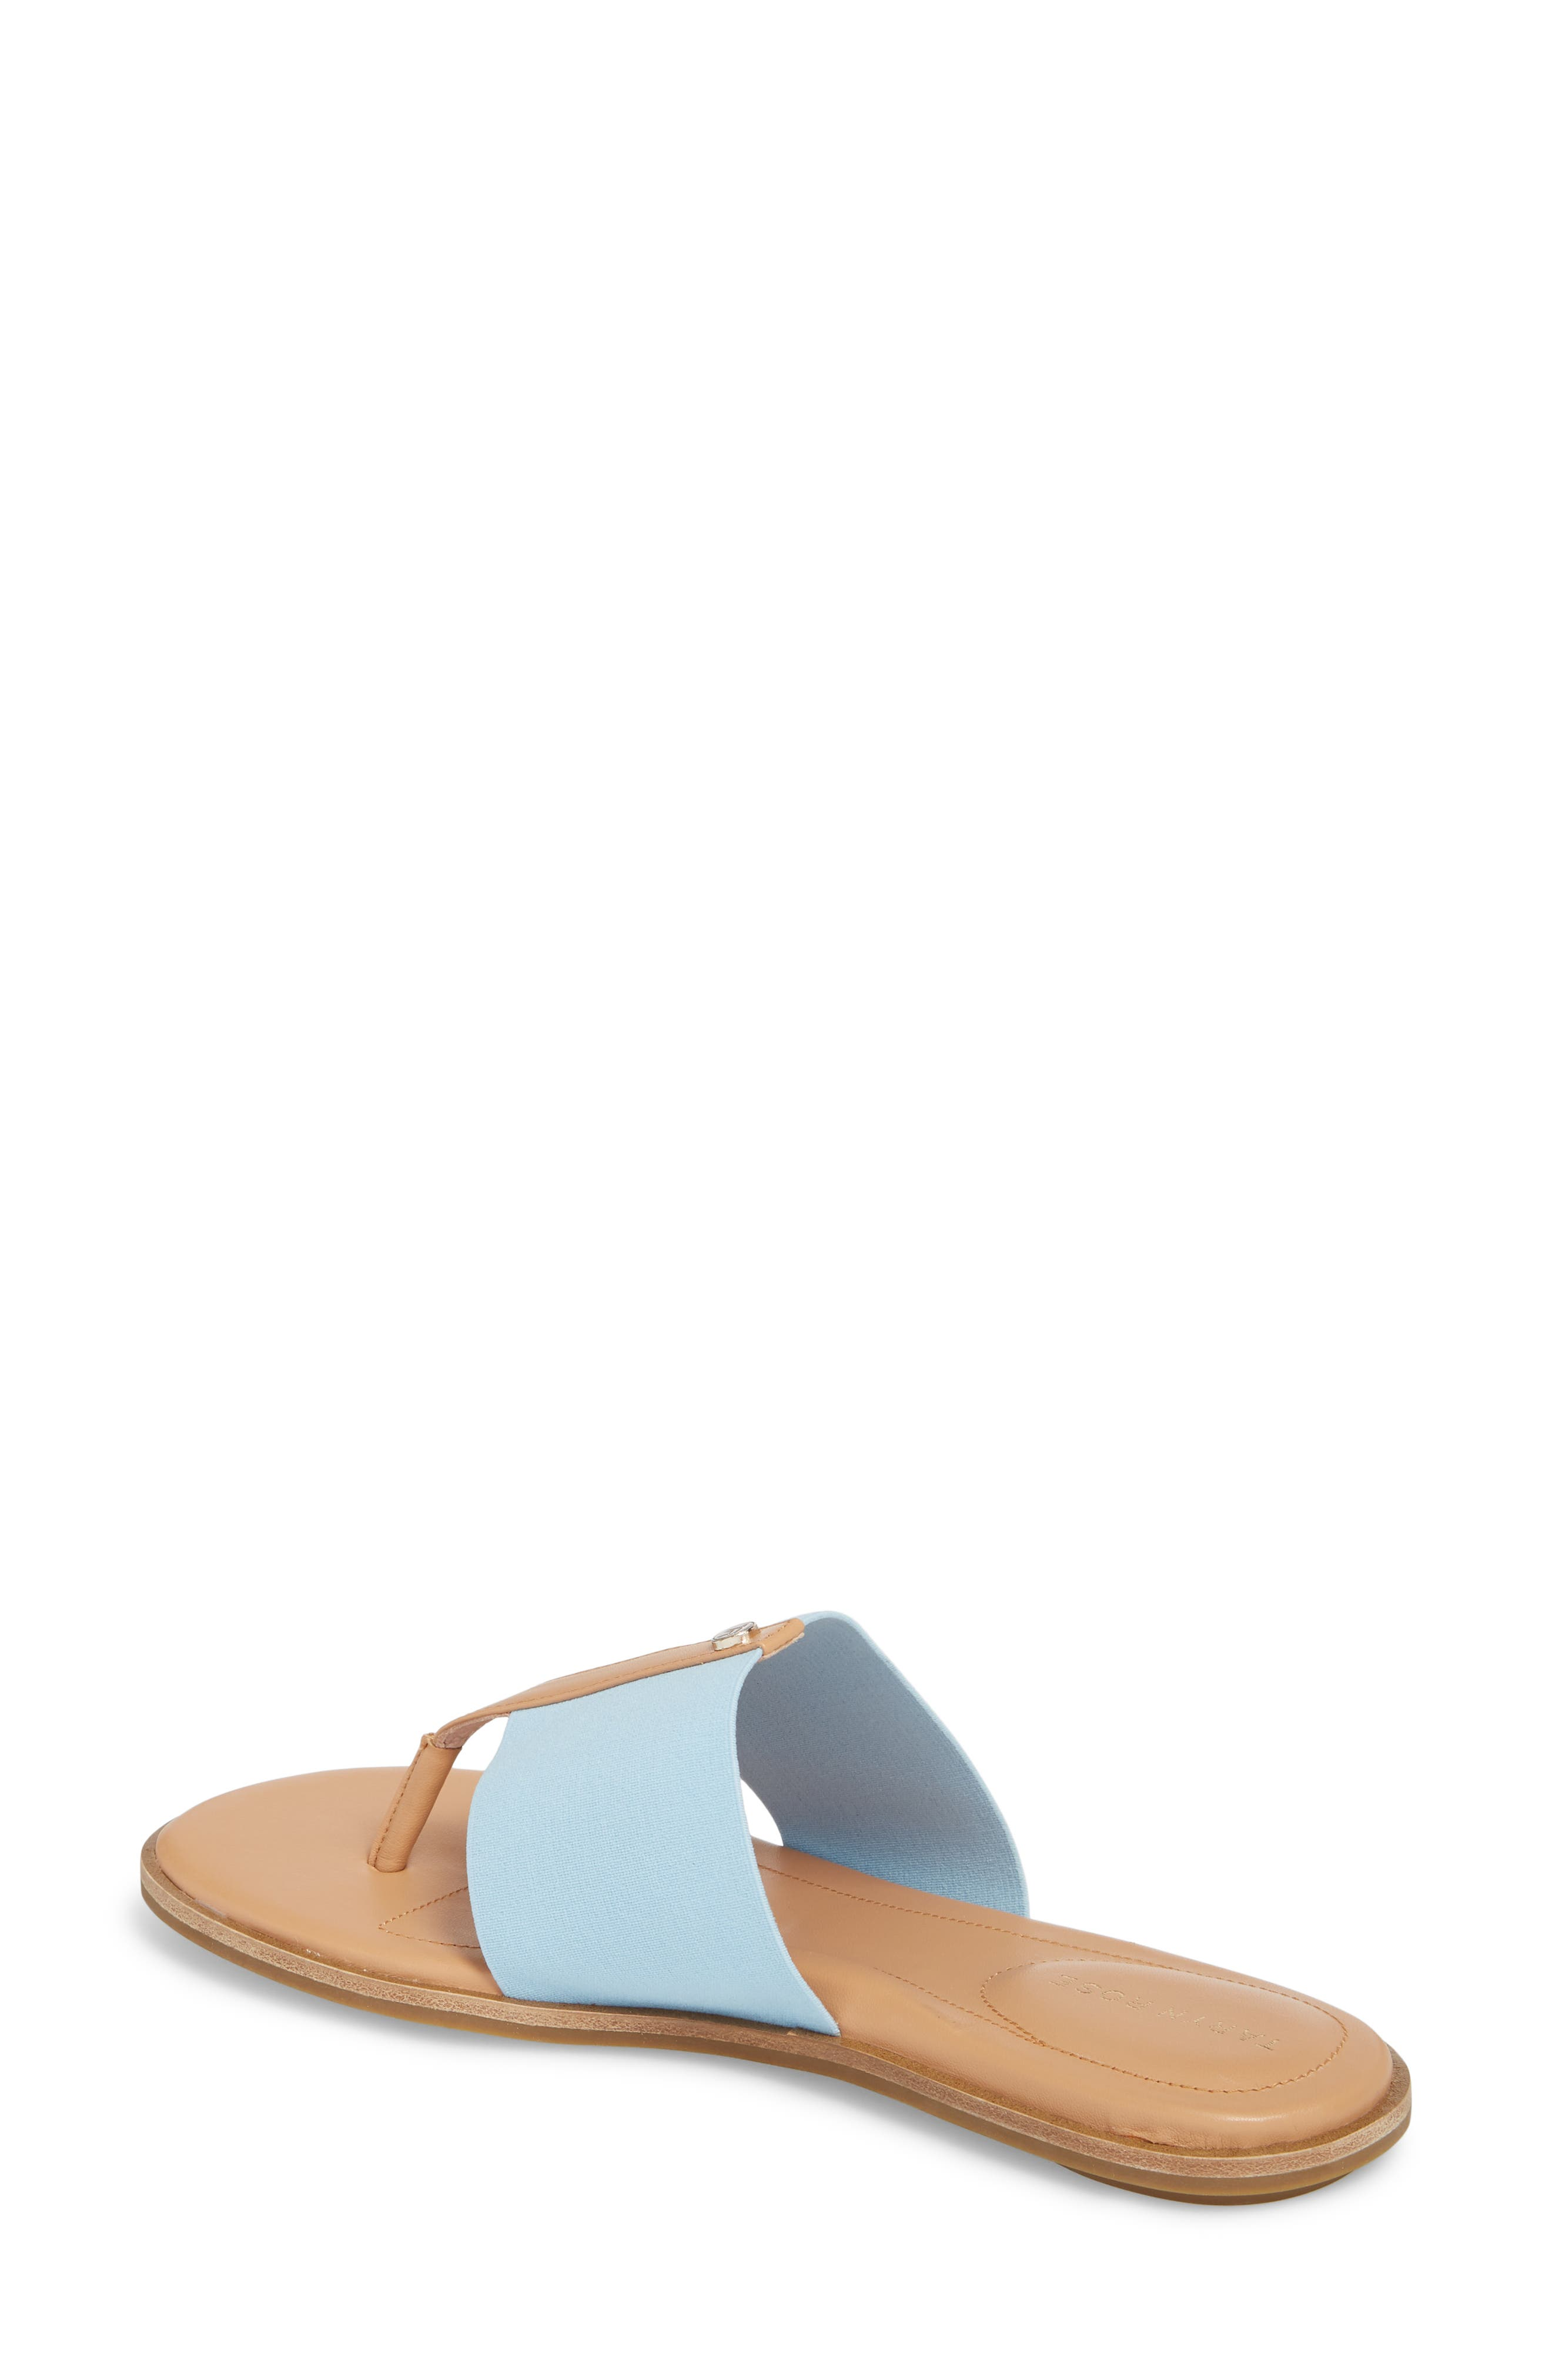 Kamryn Flip Flop,                             Alternate thumbnail 2, color,                             Sky Leather